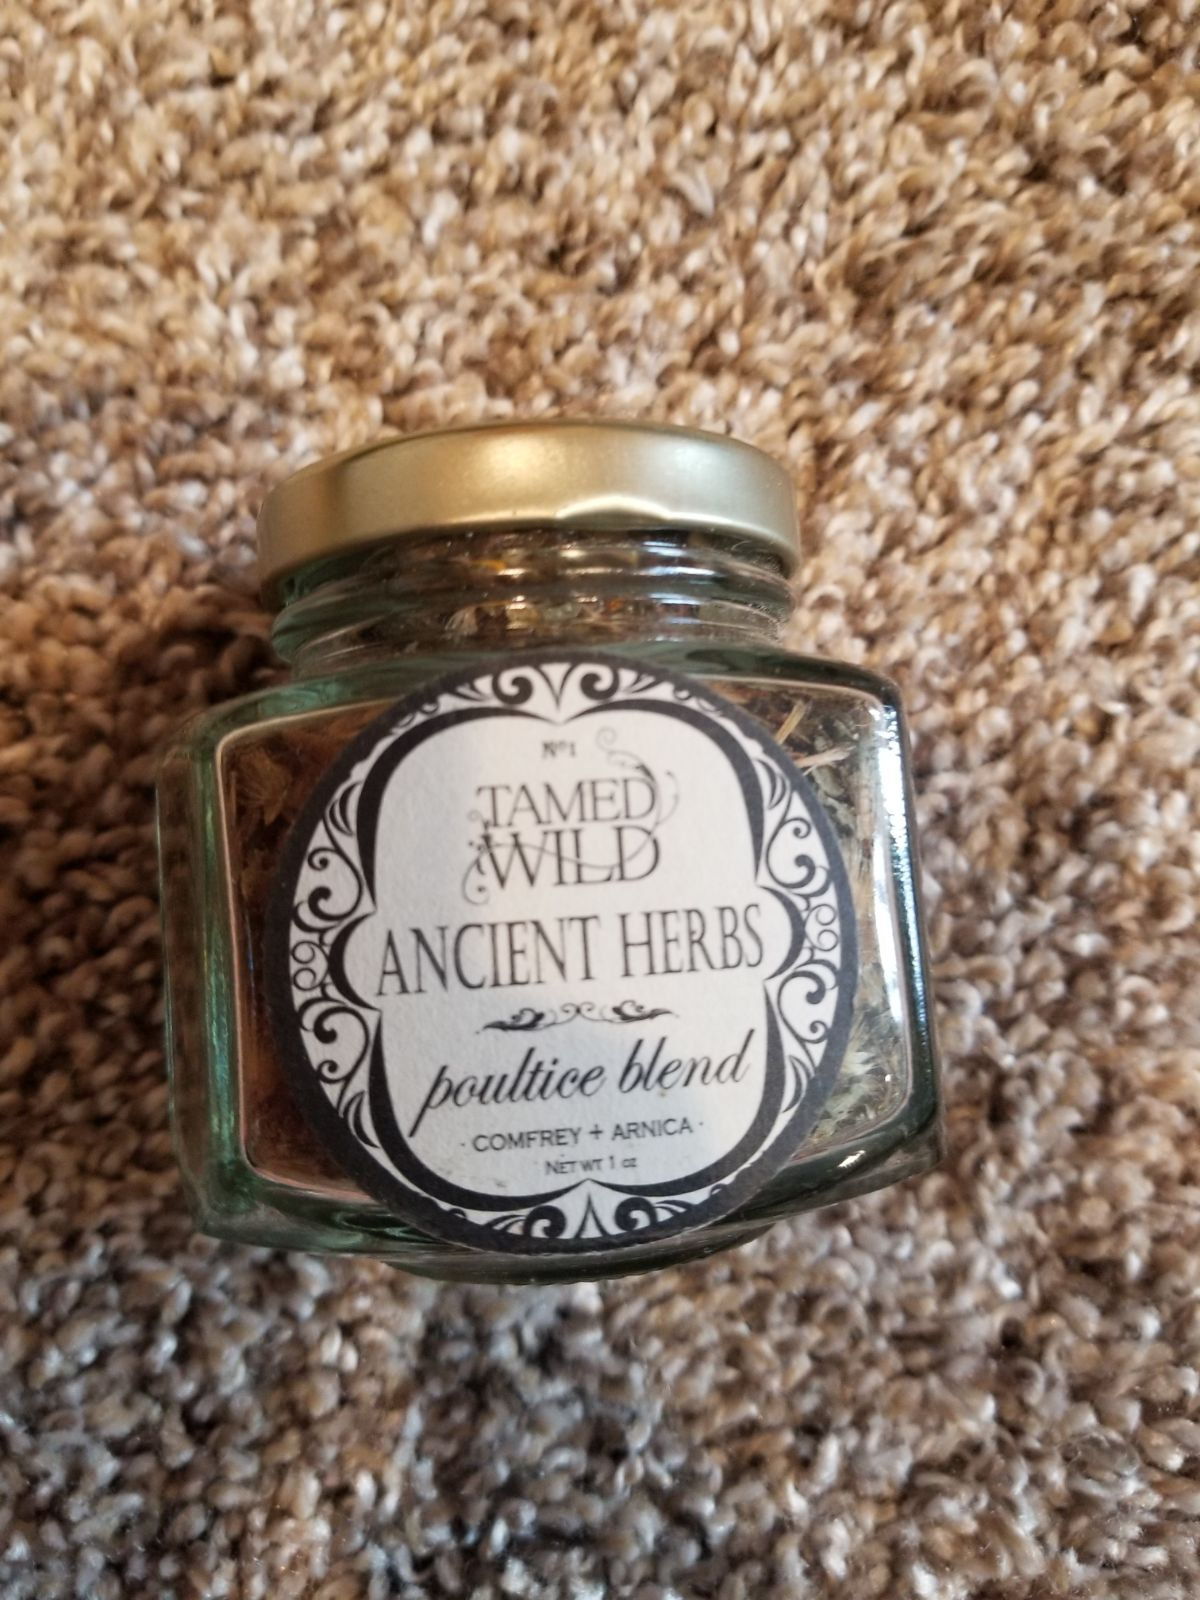 Tamed wild ancient herbs poultice blend